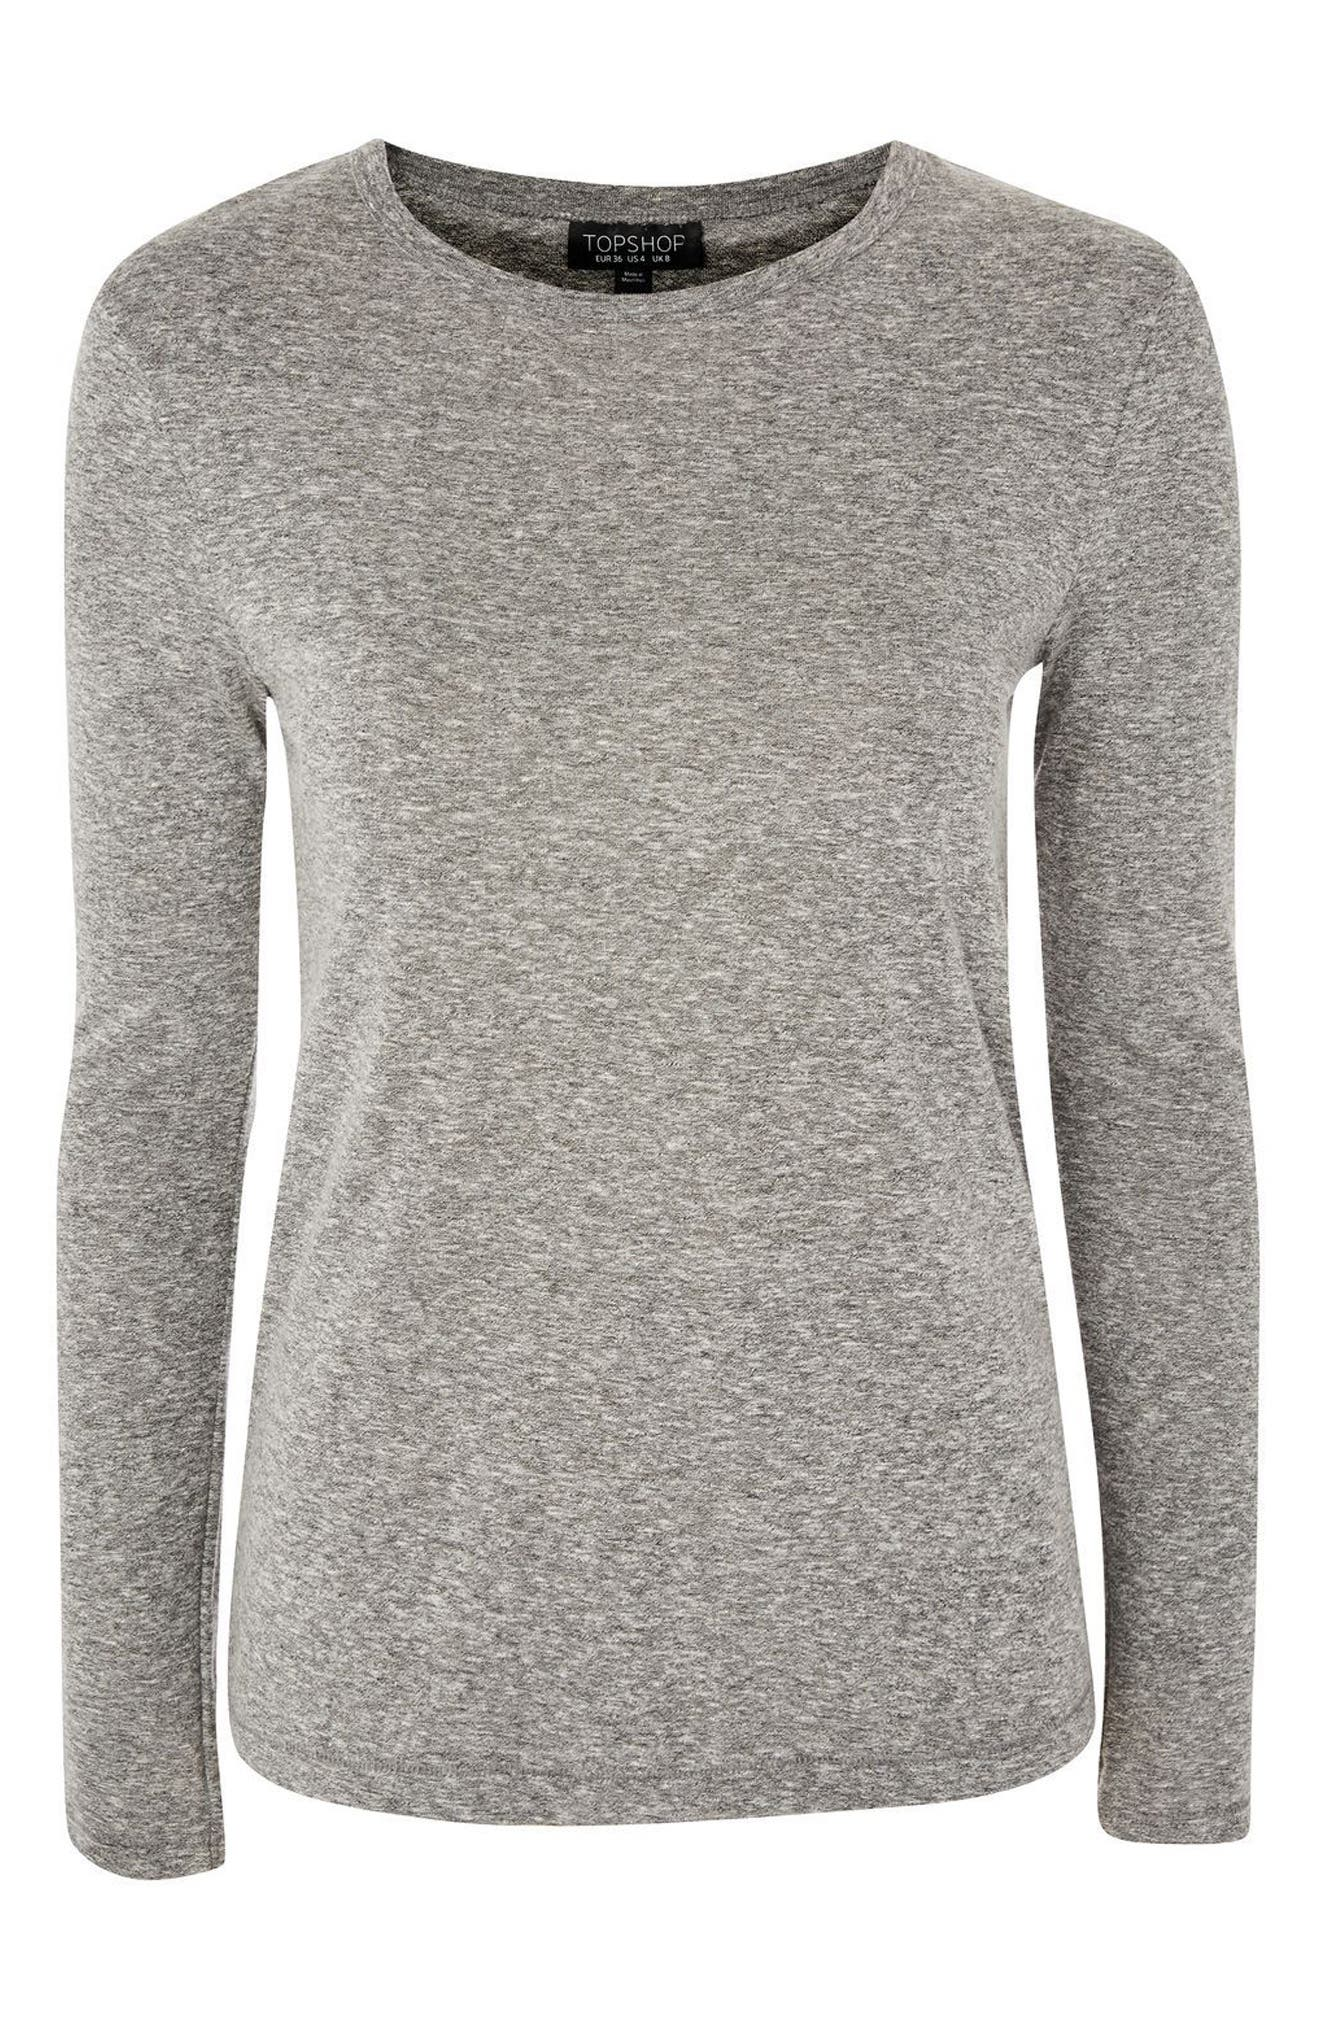 Marl Tee,                             Alternate thumbnail 3, color,                             Grey Marl